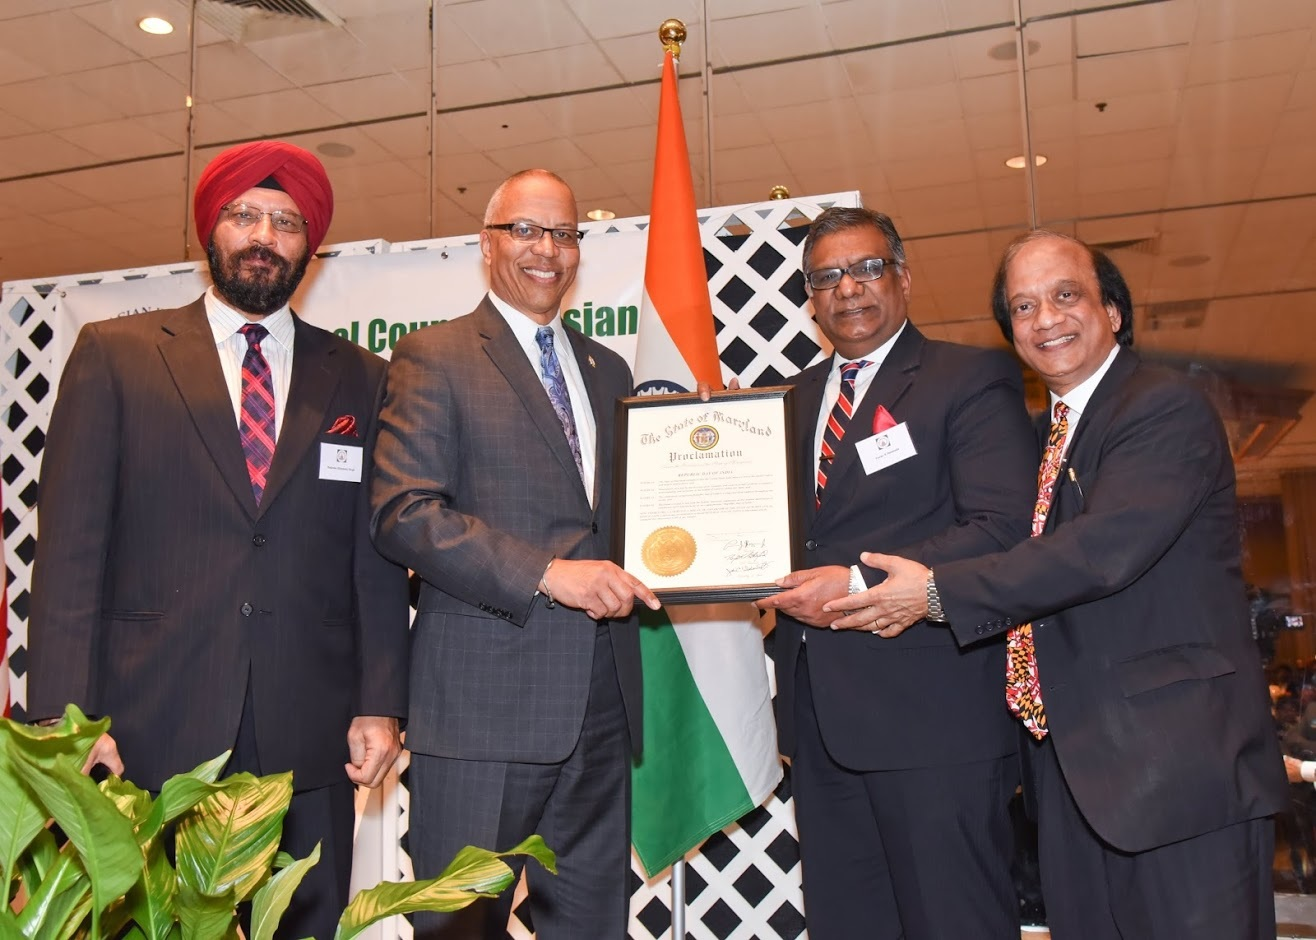 Maryland Lt. Governor Boyd Rutherford (second left) handing over a proclamation from the Governor of Maryland to NCAIA President Pavan Bezwada (second right) and Chairman Dr. Suresh K. Gupta (right).